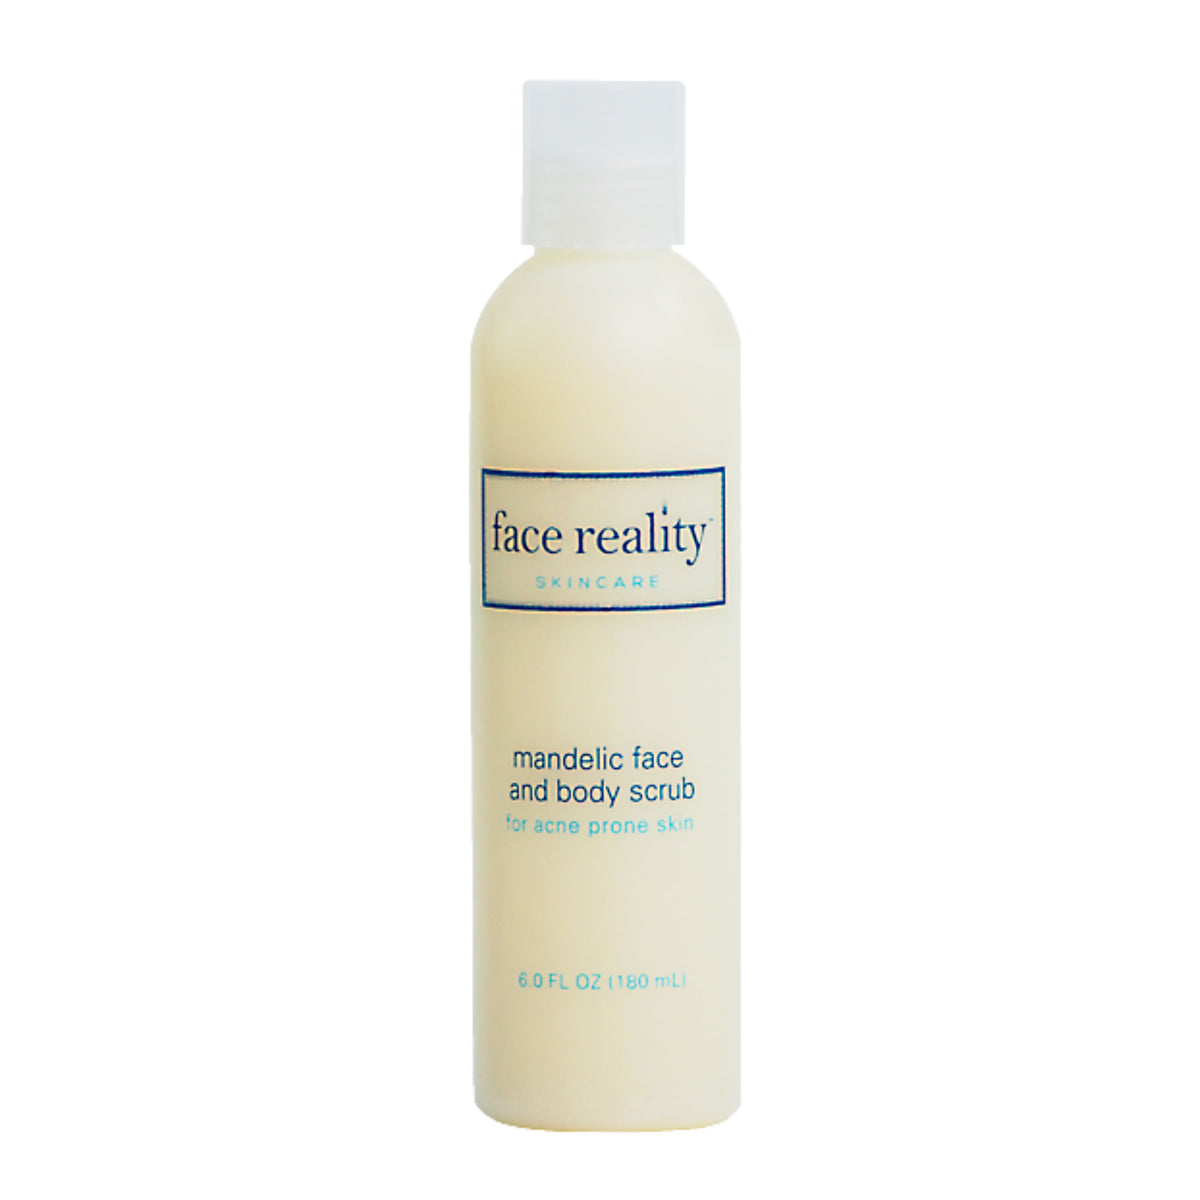 FACE REALITY - Mandelic Face and Body Scrub - Beauty Nook